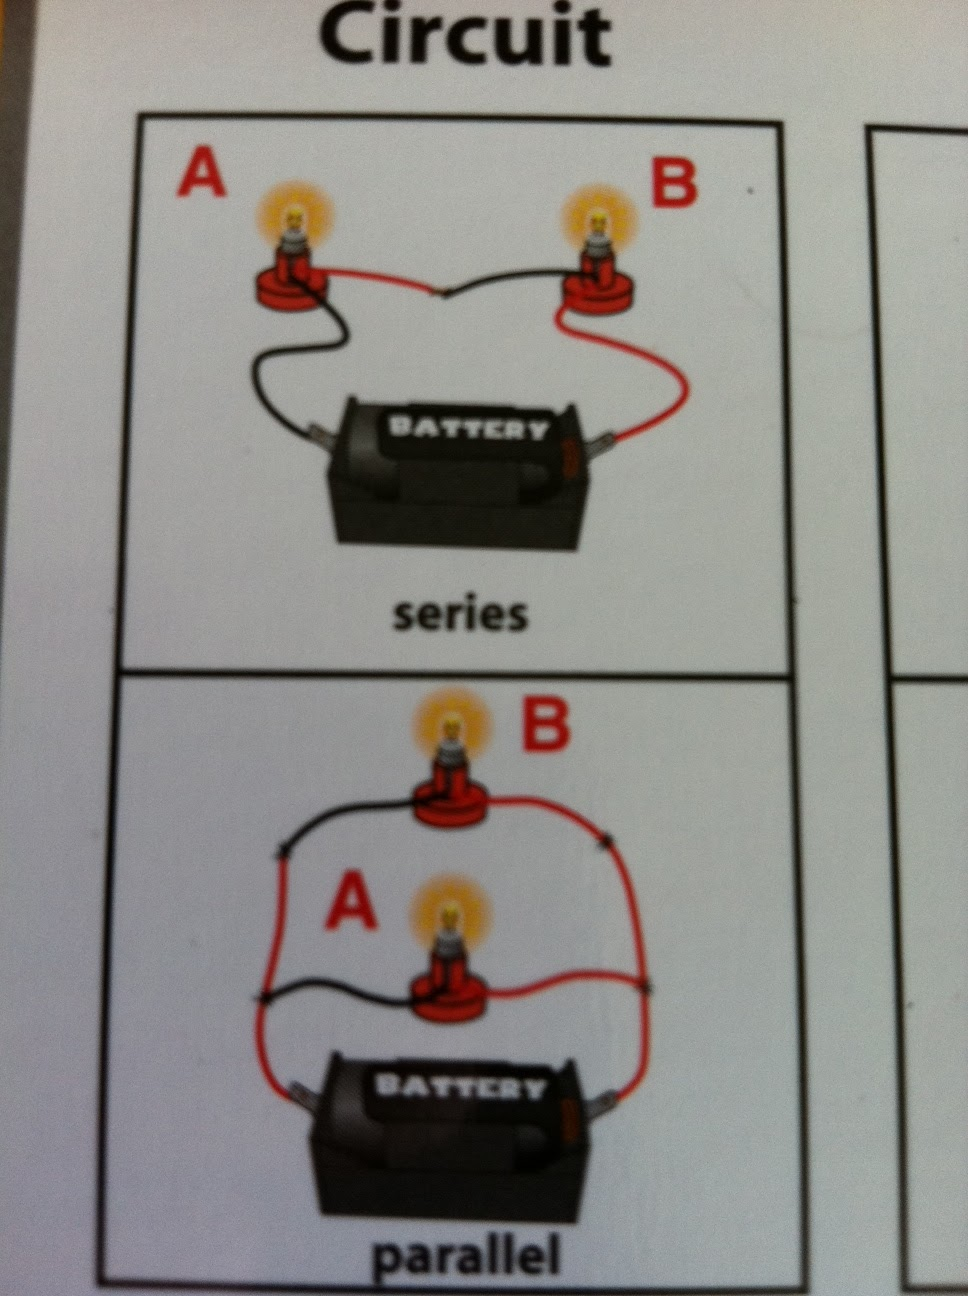 Ms Simcoxs Super Scientists May 5th Electricity Ii Circuits Series And Parallel For Kids They Set Up The As Shown Below Then Unscrewed One Bulb From Each We Observed What Happened Discussed Results